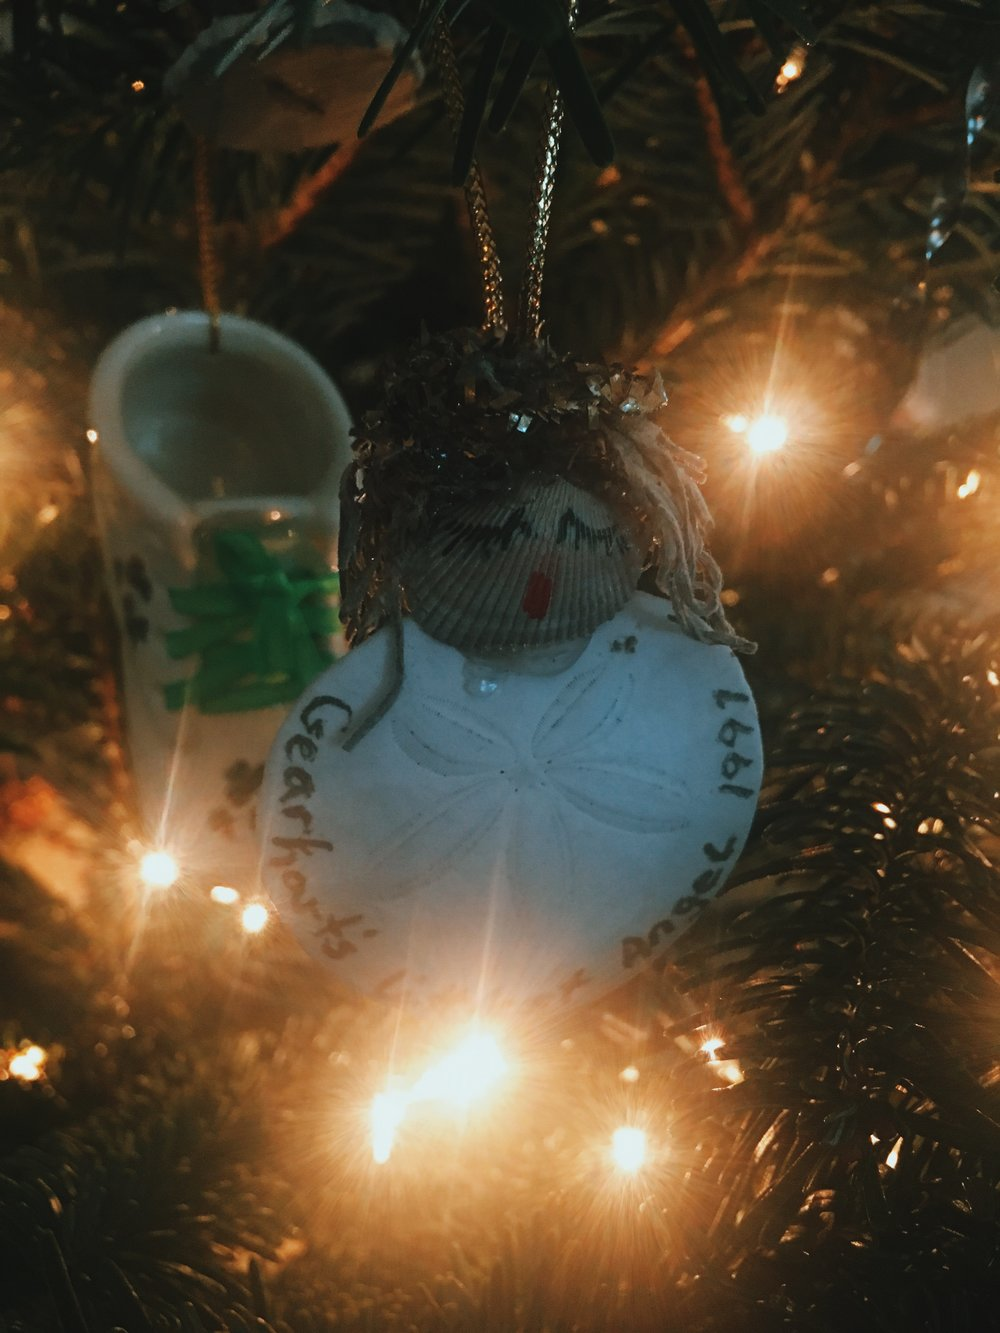 This ornament broke few days after I took the photo.